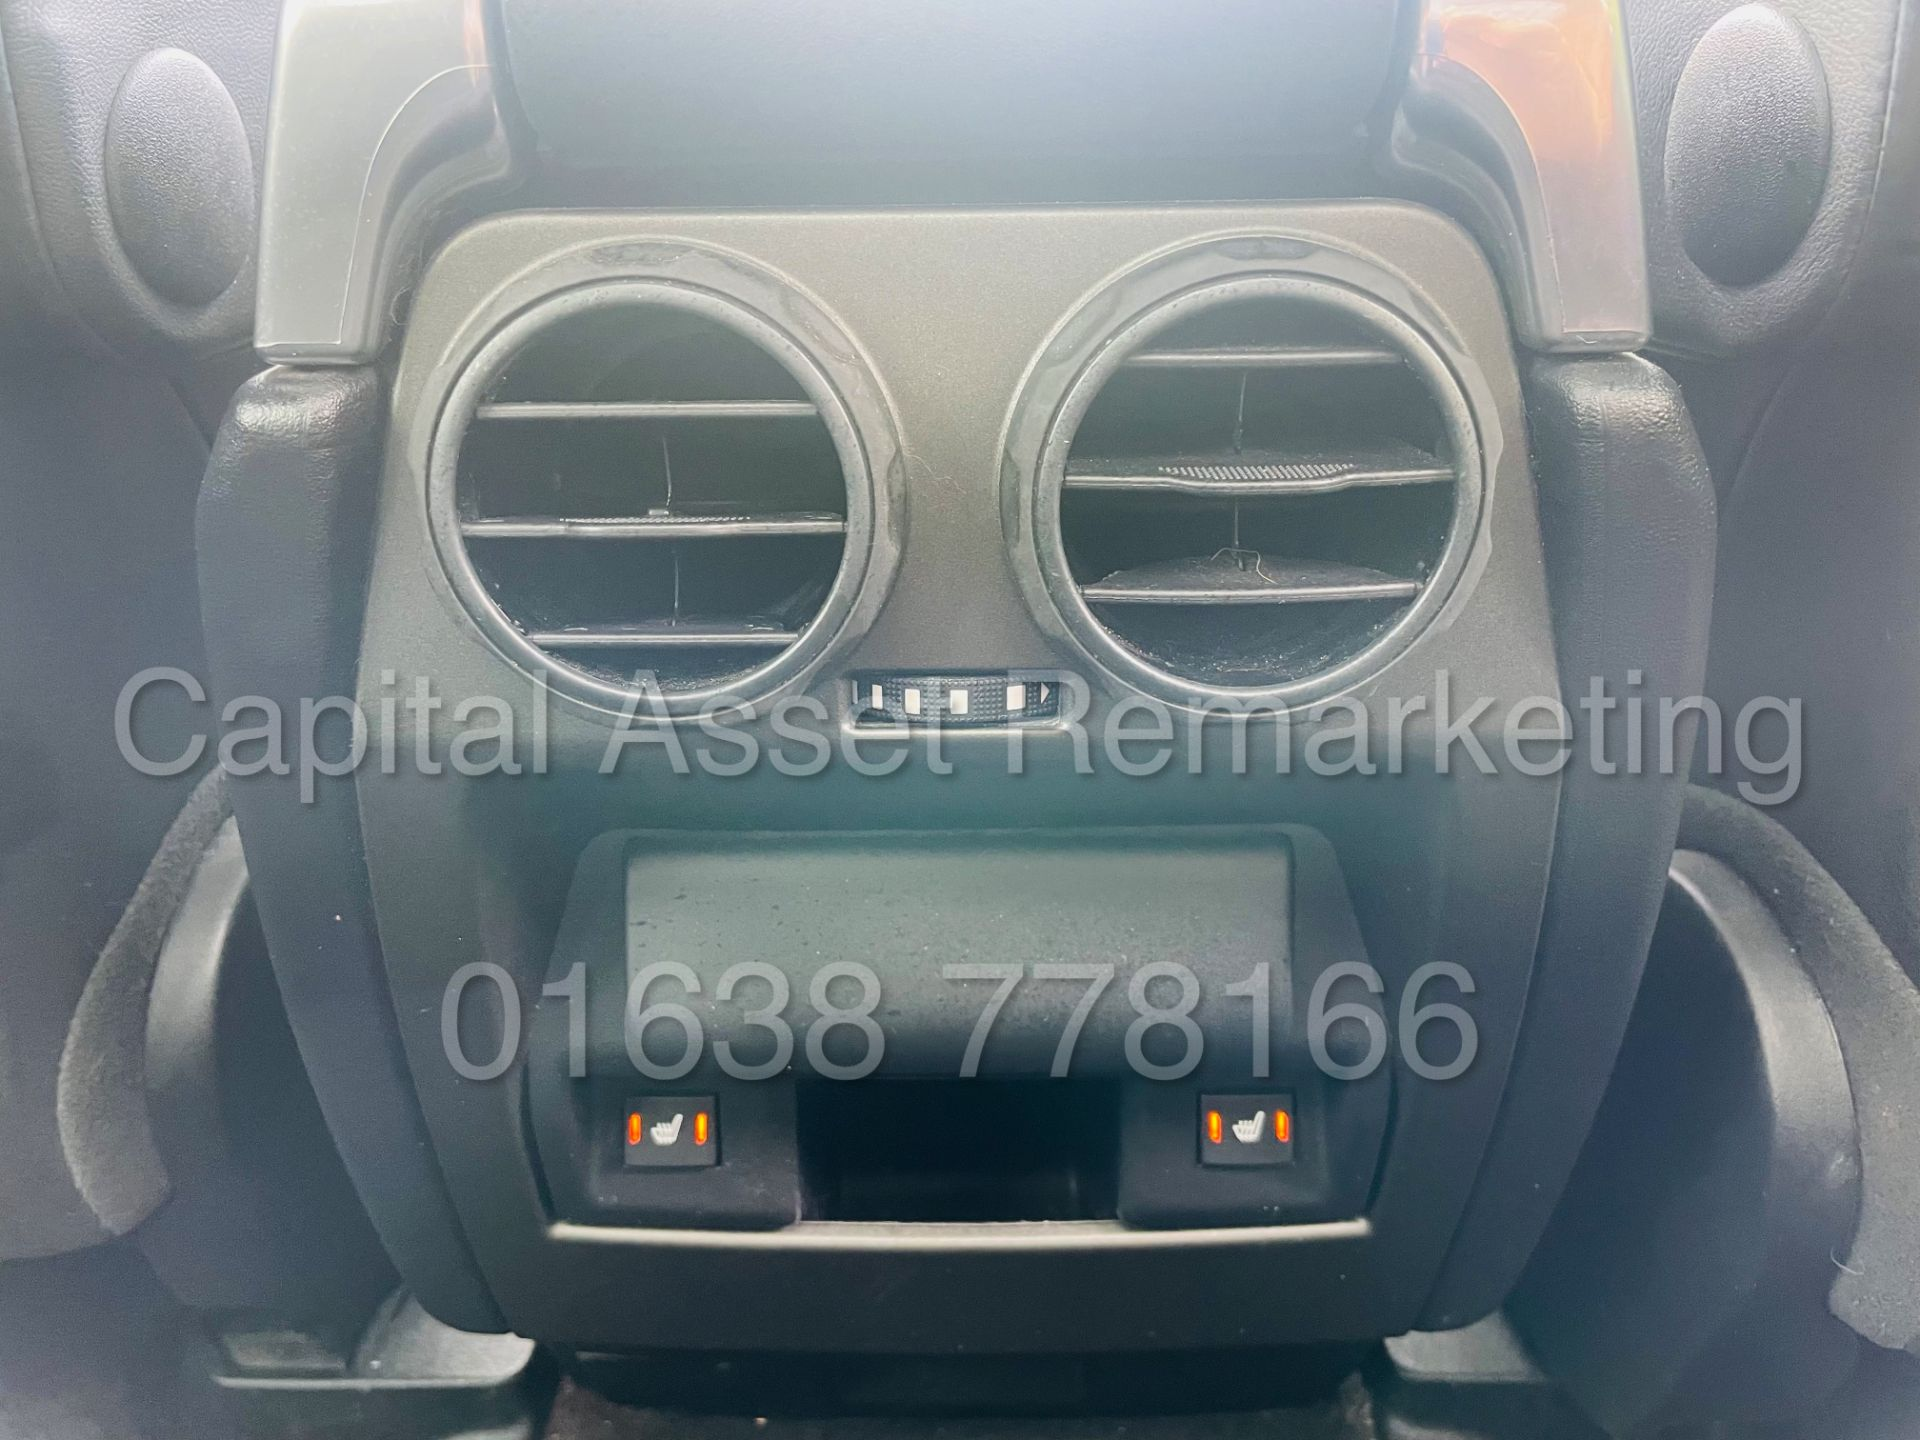 LAND ROVER DISCOVERY 4 *HSE* 7 SEATER SUV (2014 - NEW MODEL) '3.0 SDV6 - 255 BHP - 8 SPEED AUTO' - Image 37 of 61